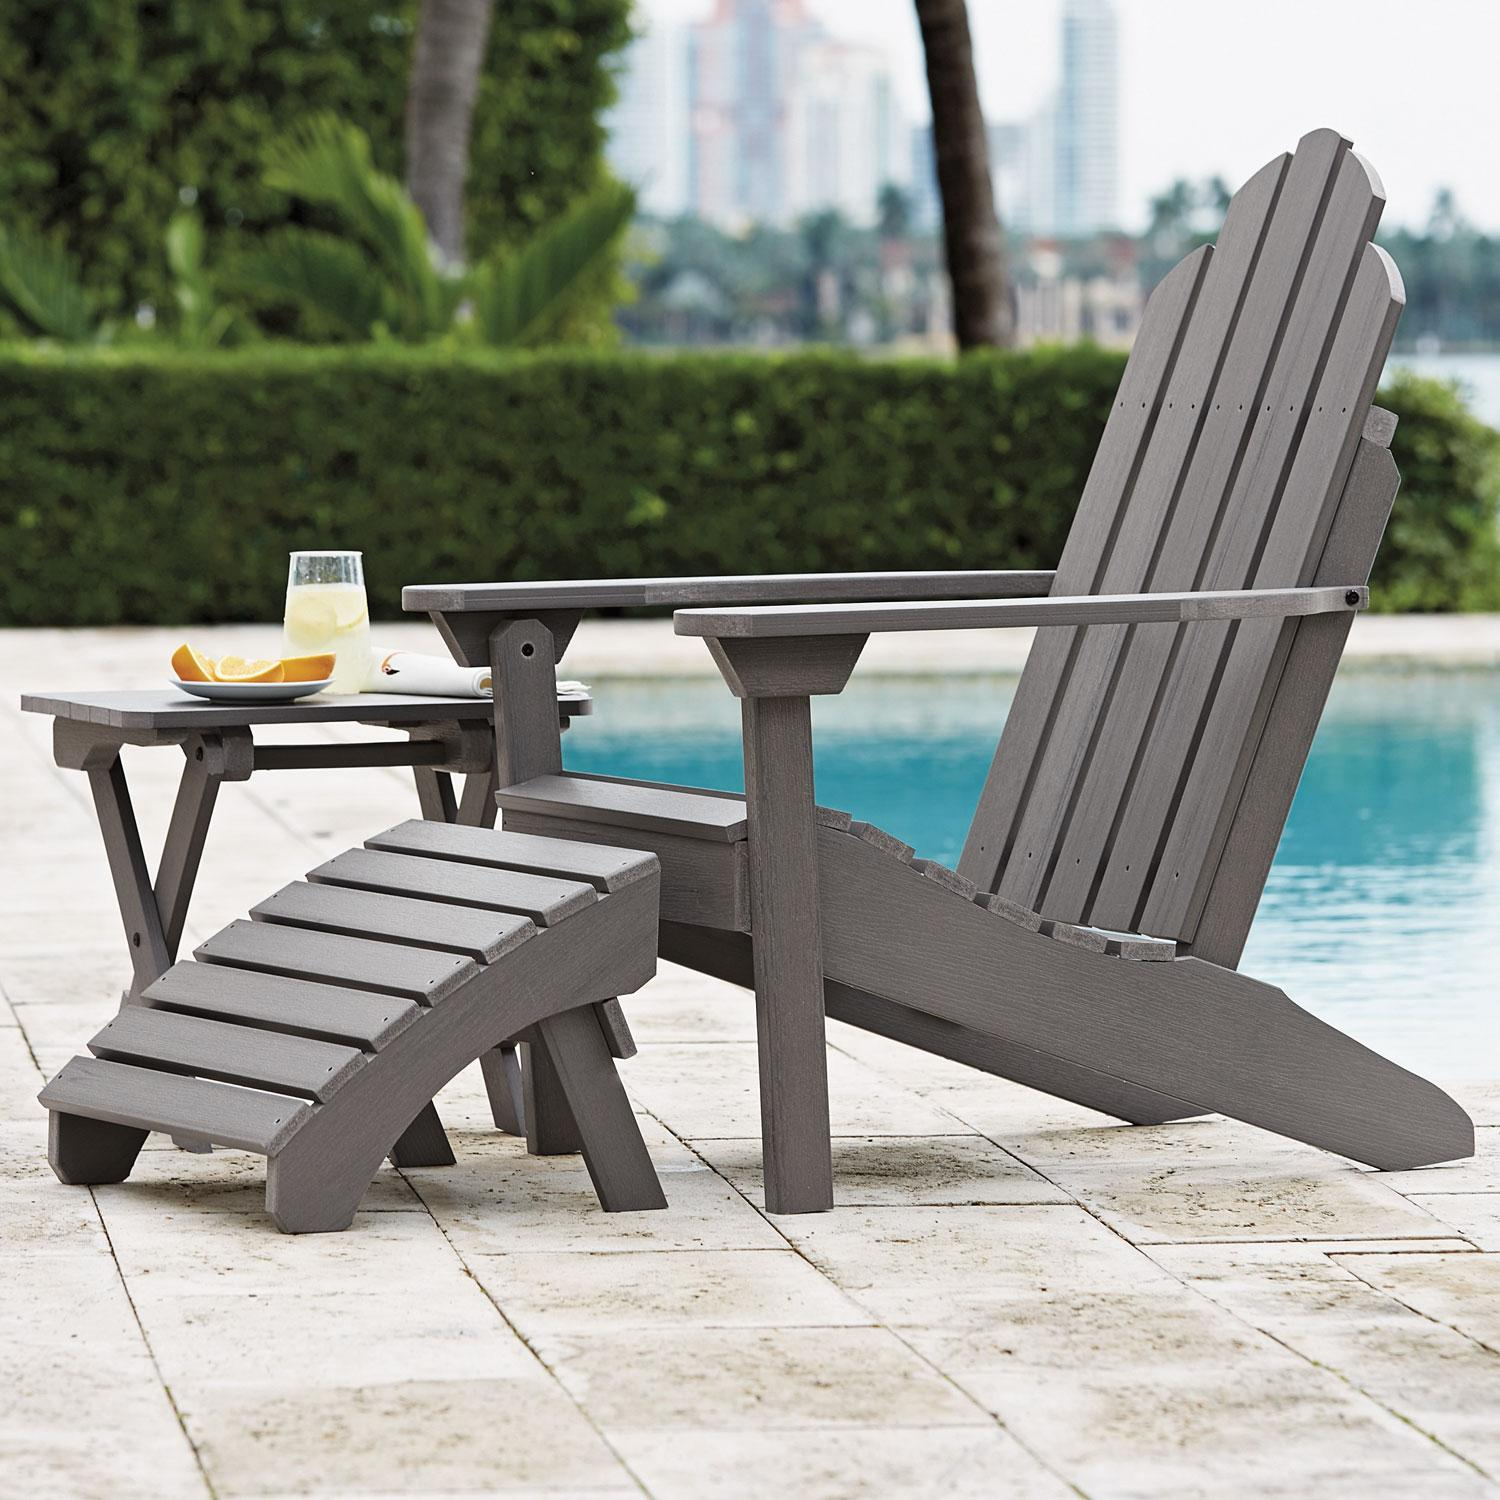 Adirondack Chairs & Outdoor Furniture - Gray Company